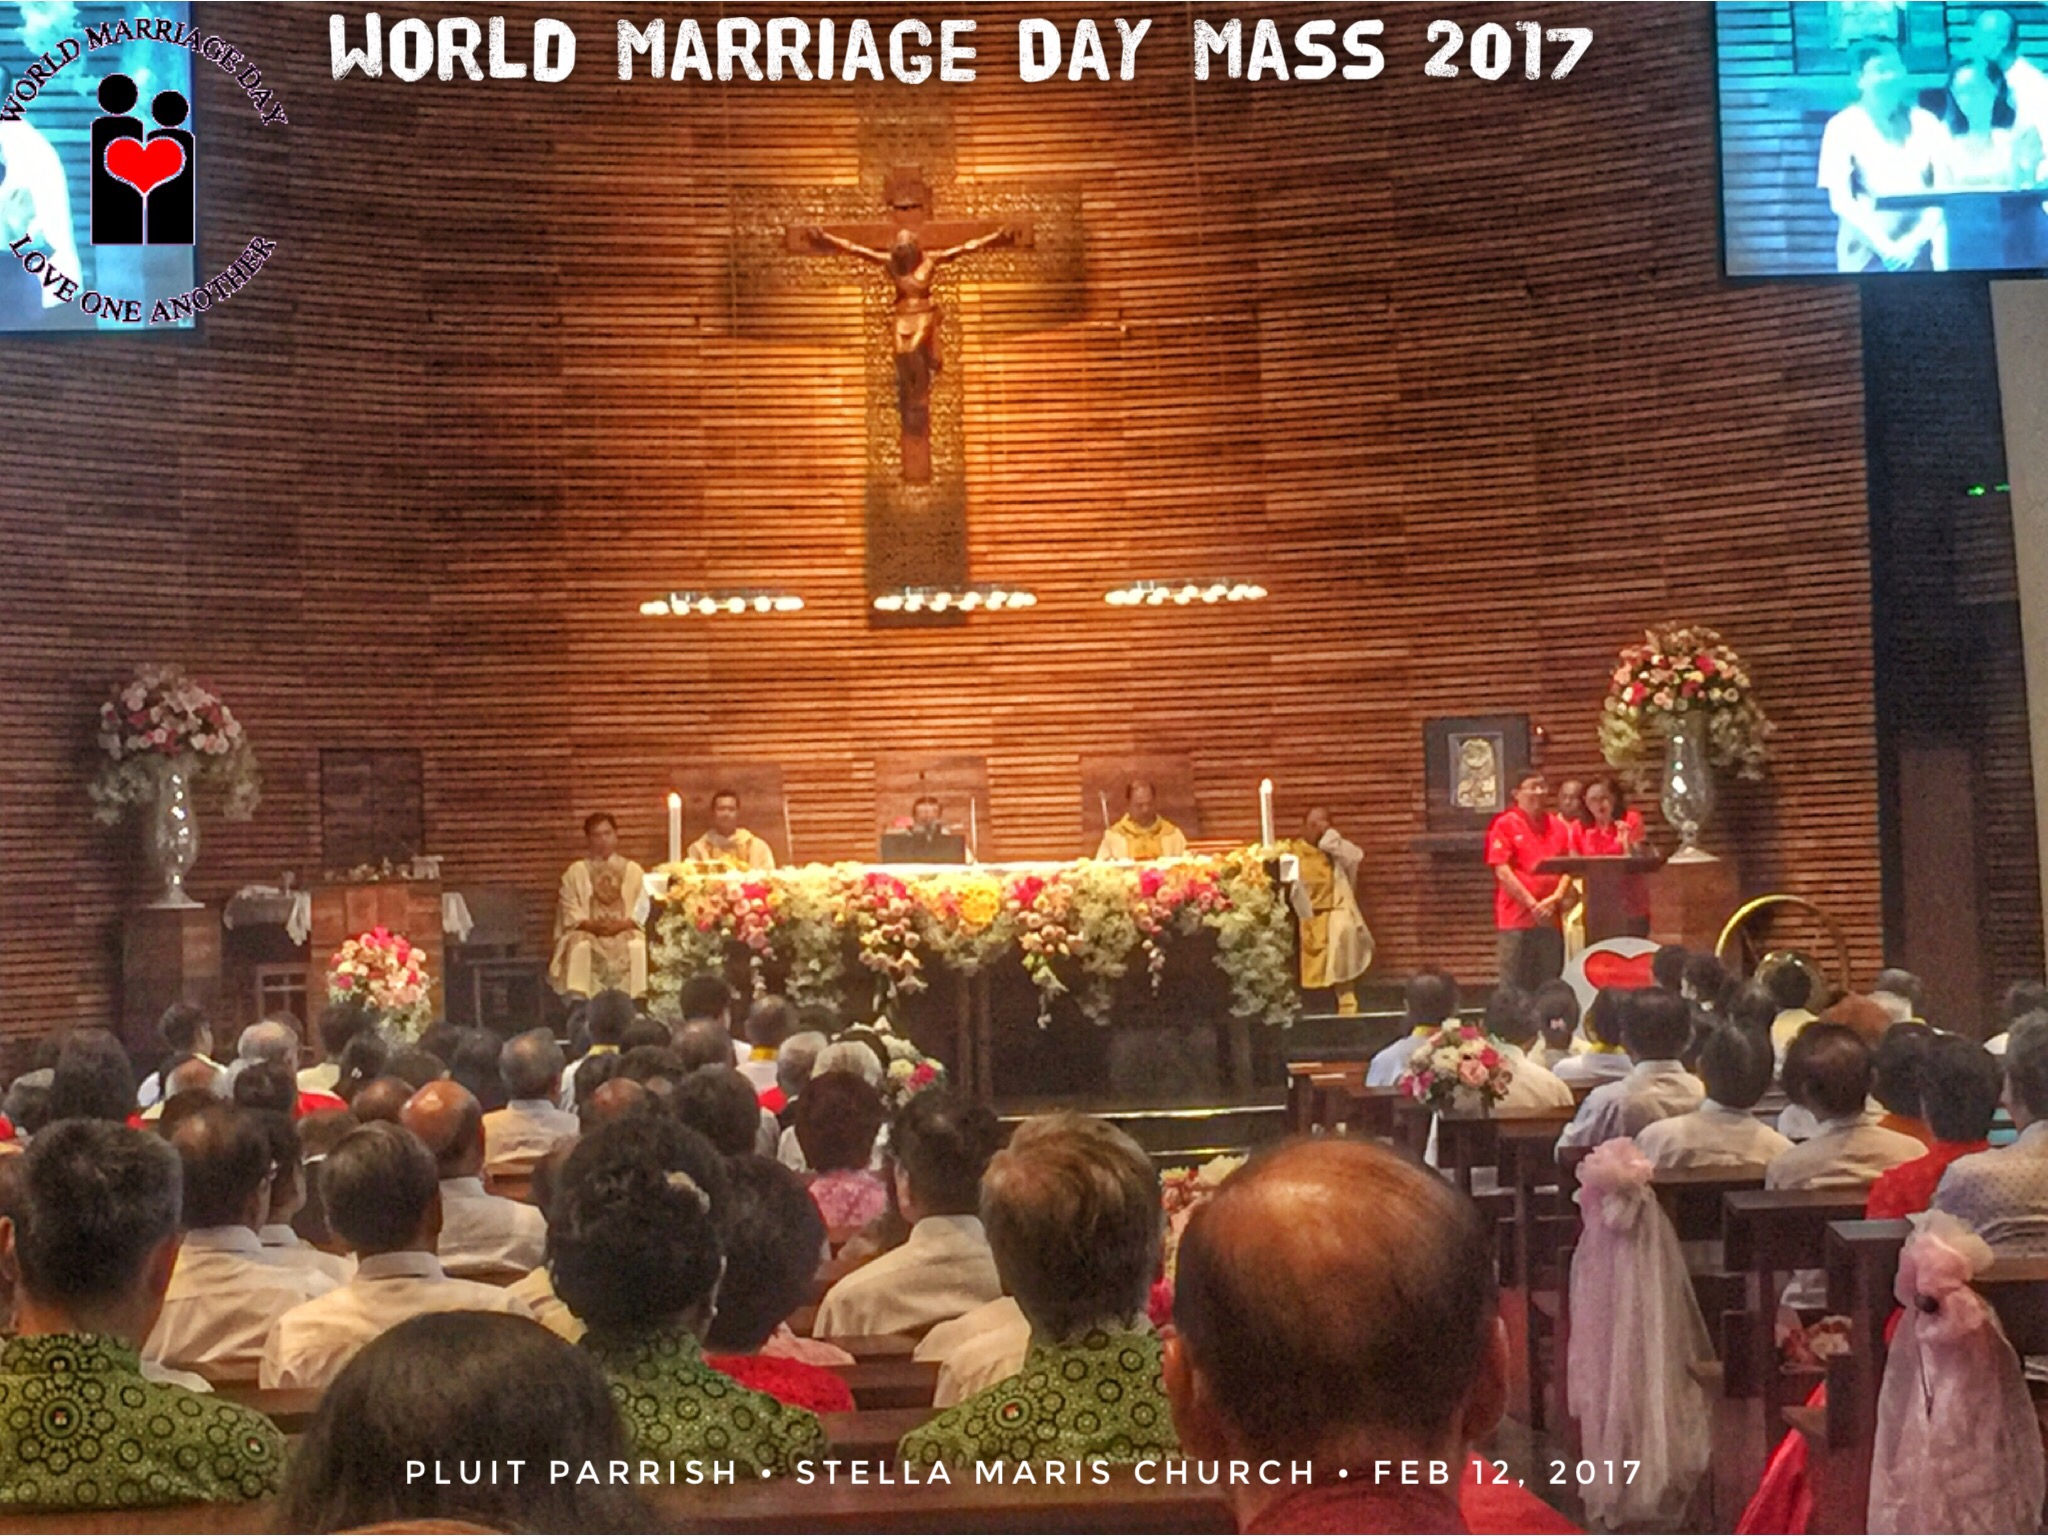 World Marriage Day Mass 2017